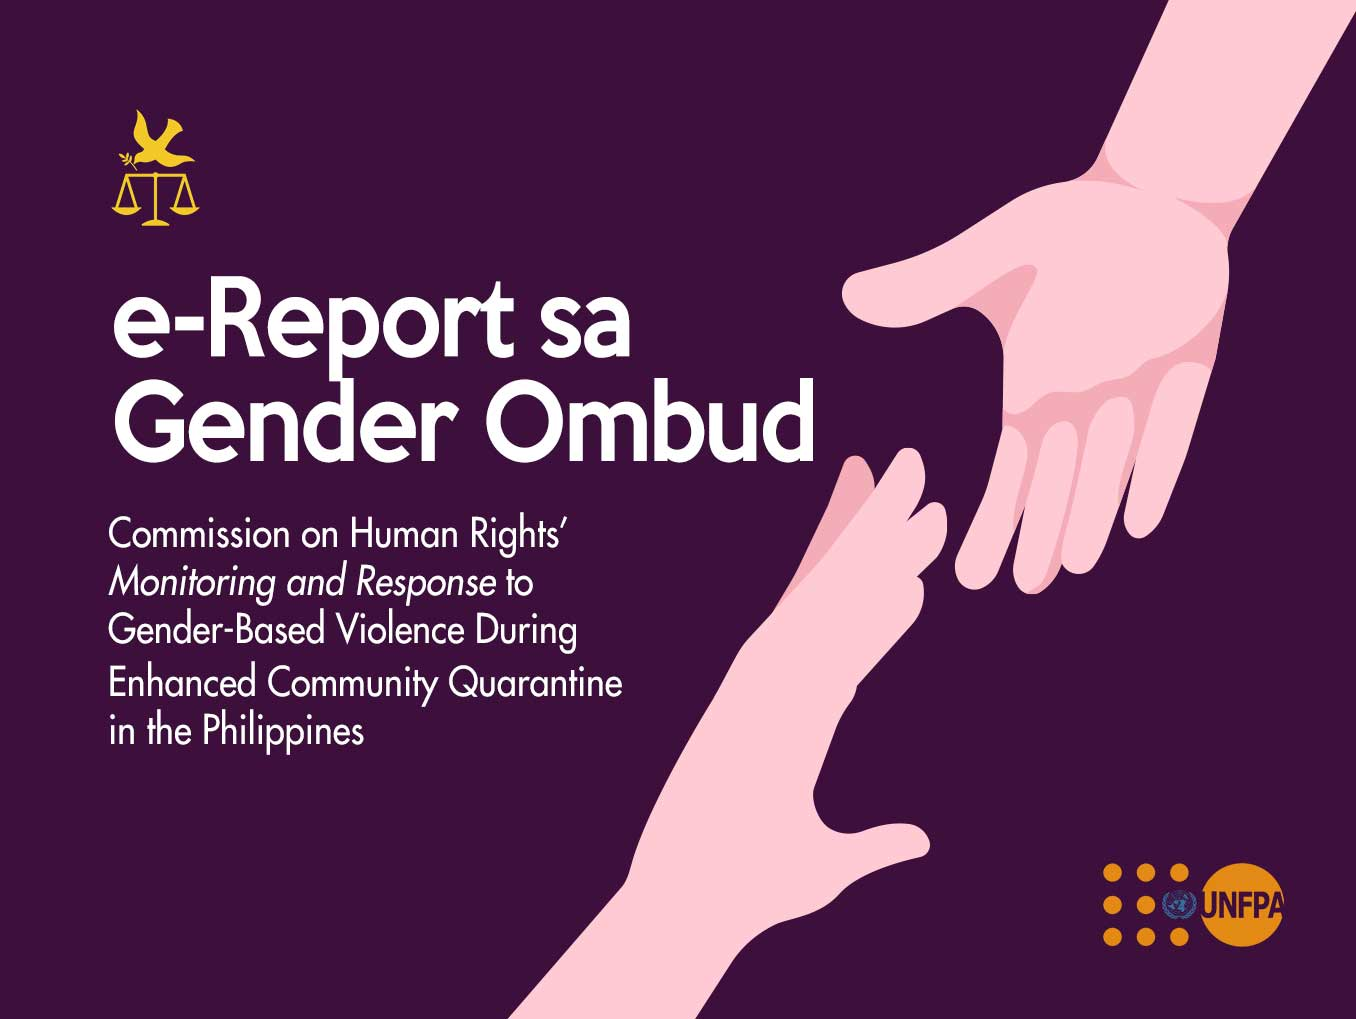 e-Report sa Gender Ombud banner image